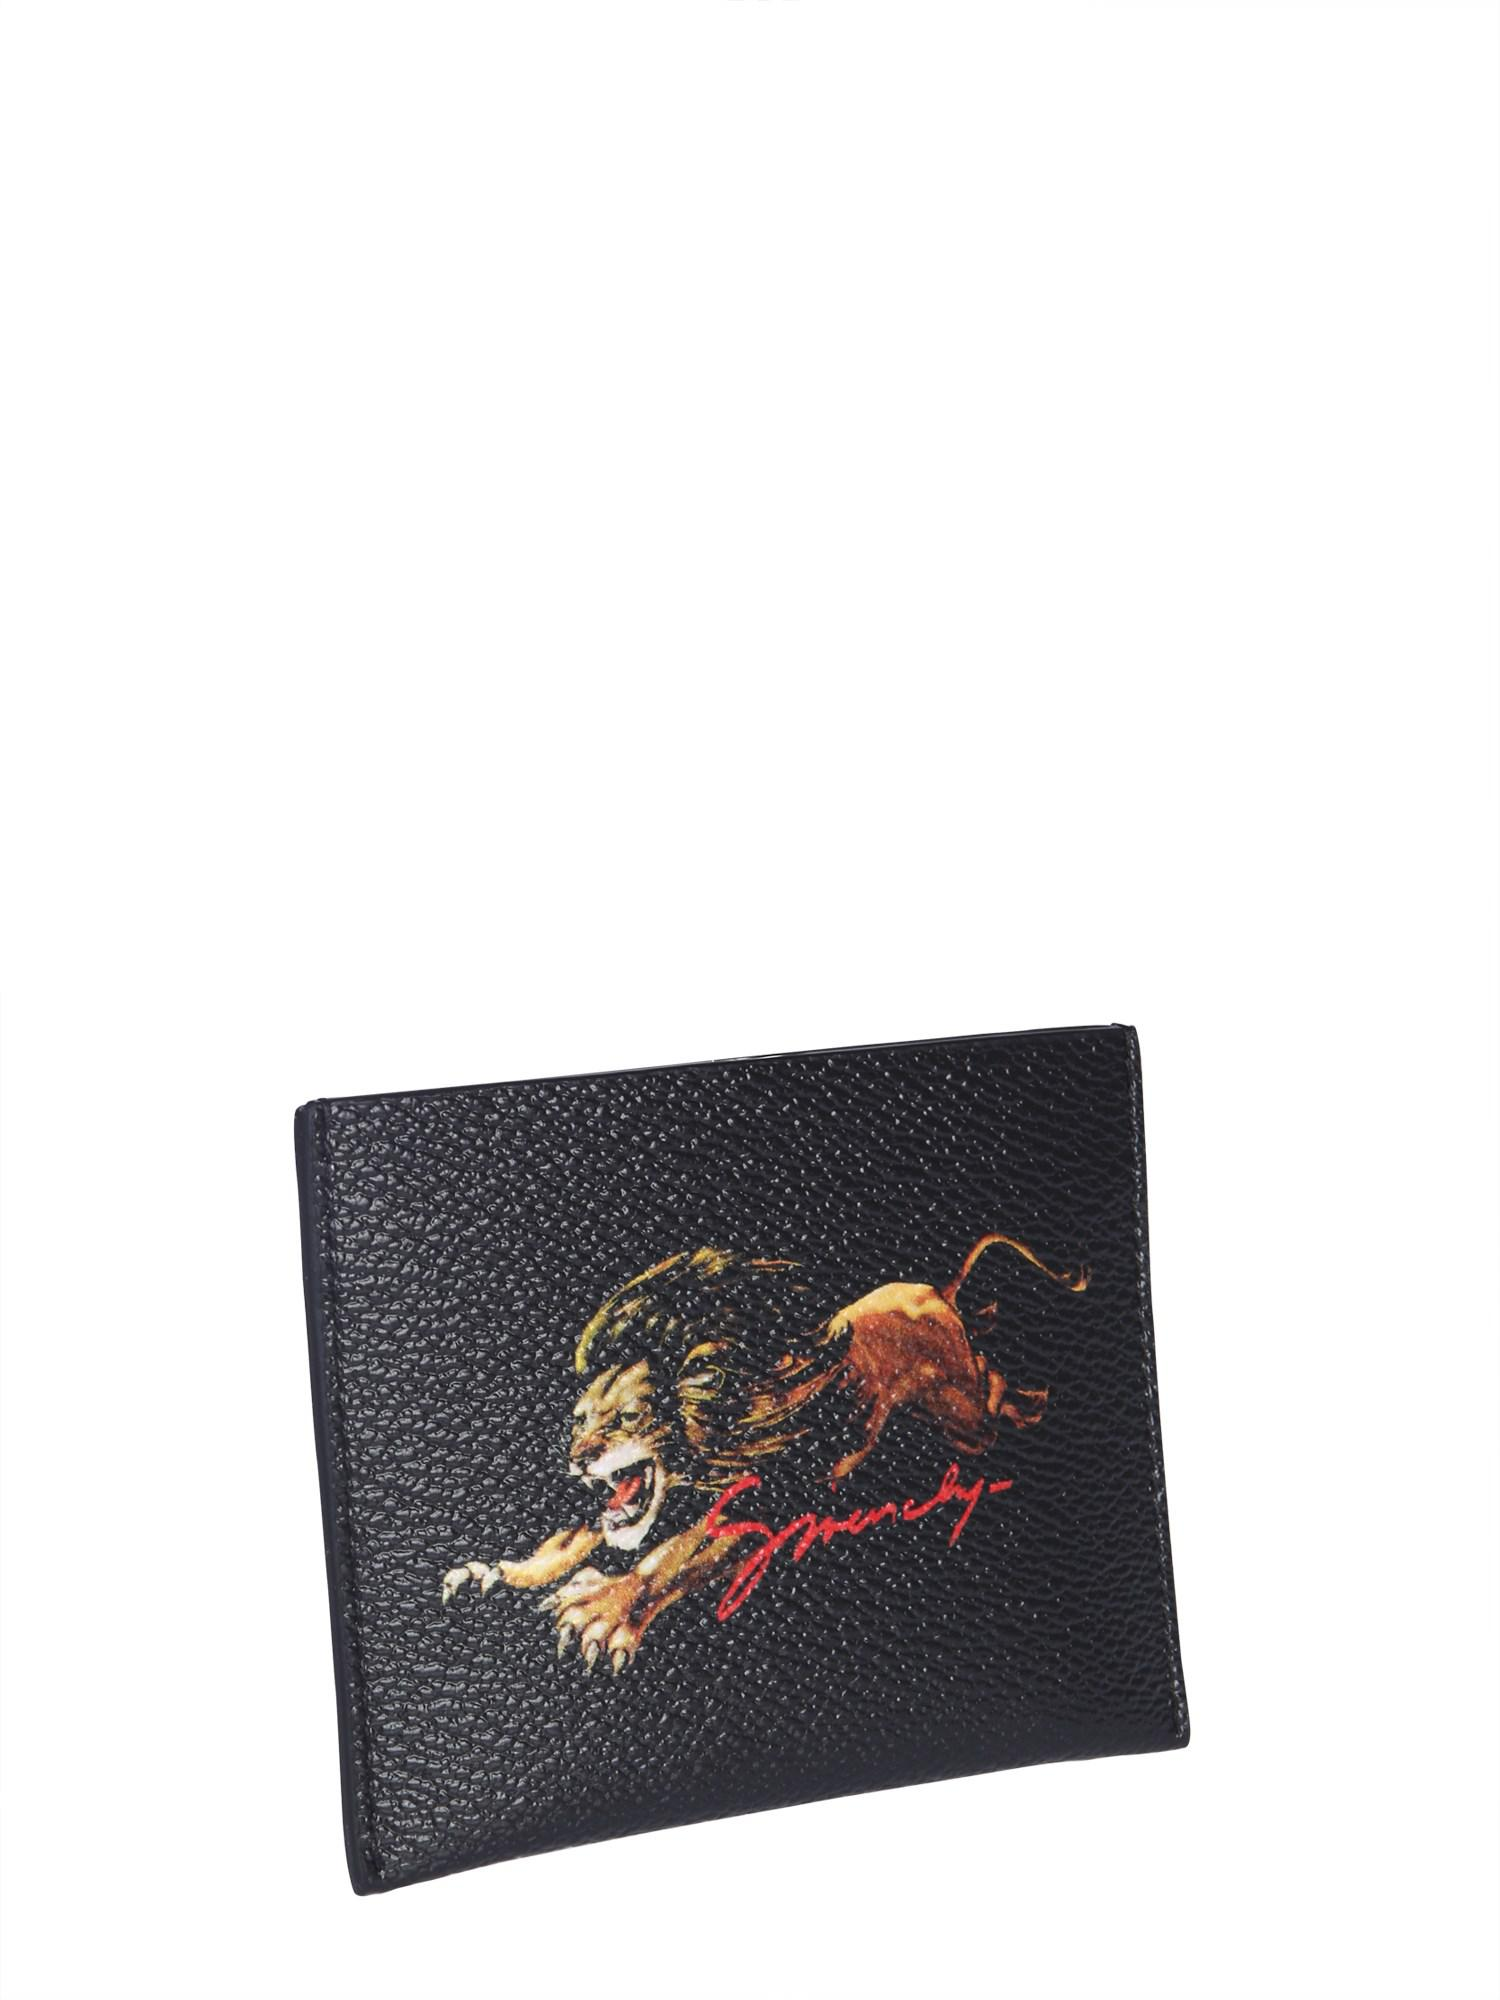 0e9ce4fafed Lyst - Givenchy Card Case With Lion Print in Black